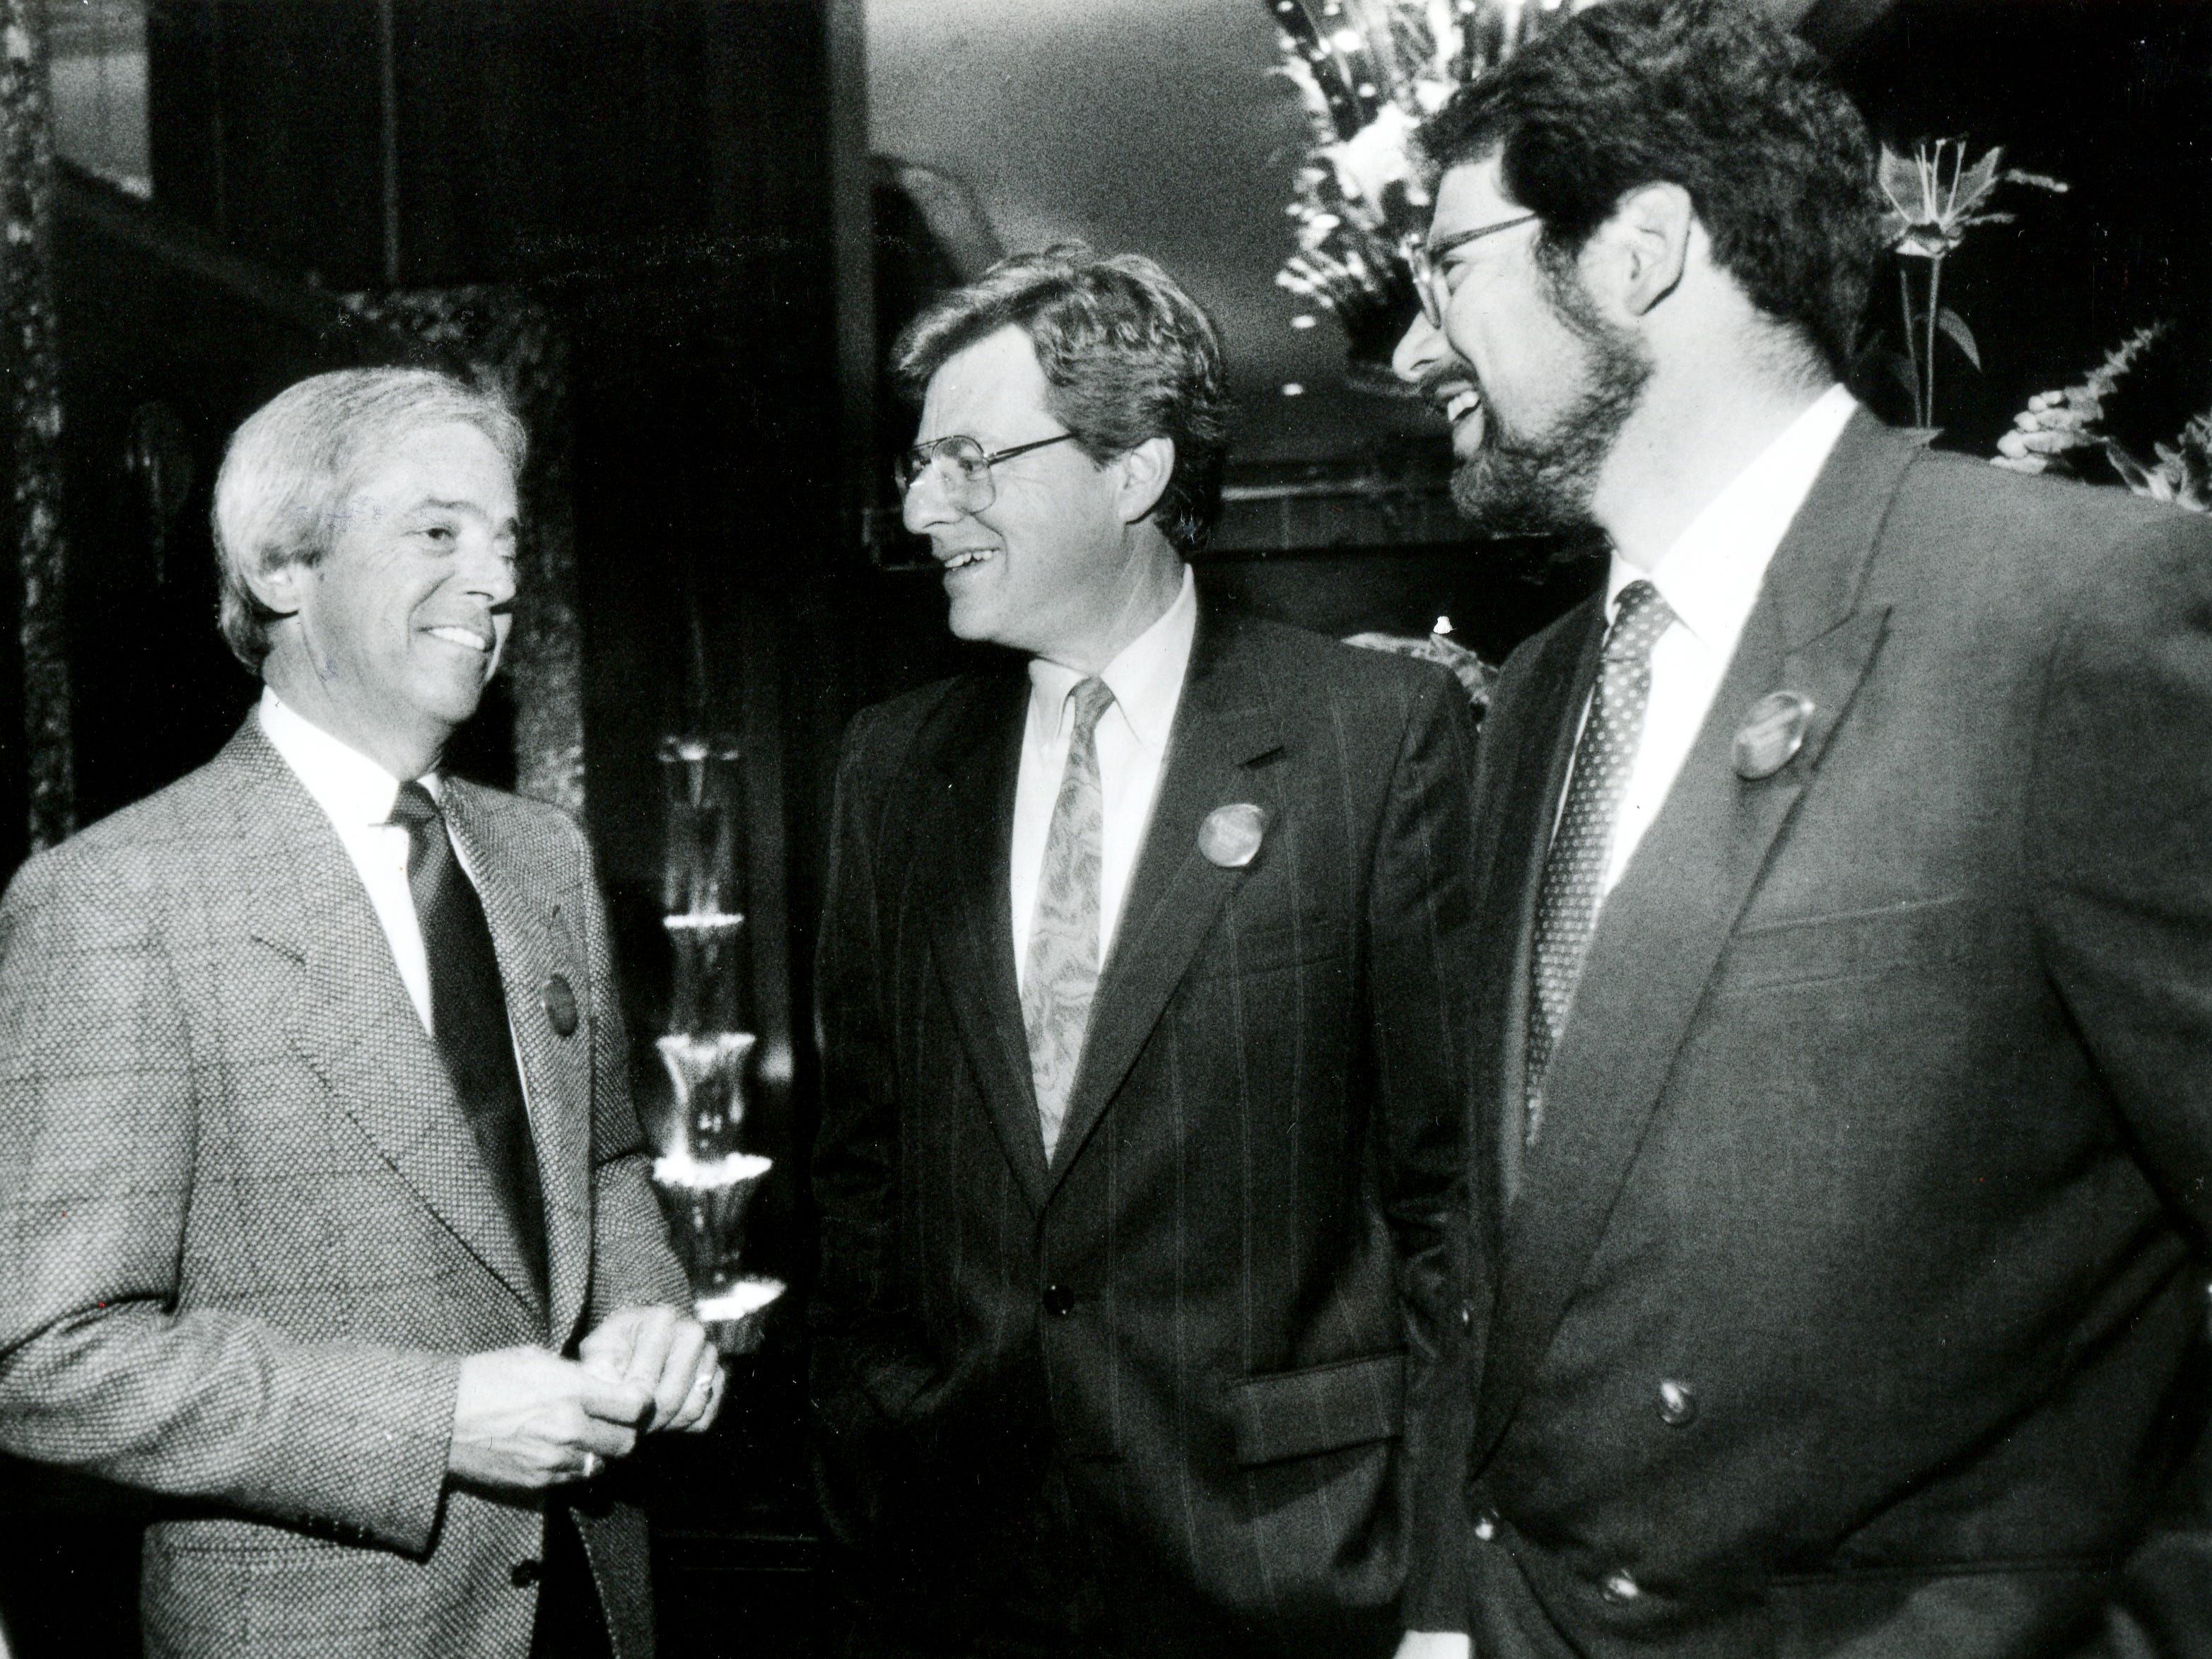 Cincinnati Reds broadcaster, Marty Brennaman,  Jerry Springer, former WLWT news anchor, and Dr. Lawrence Kurtzman, Sept. 17, 1990. Enquirer file photo by Michael Snyder.